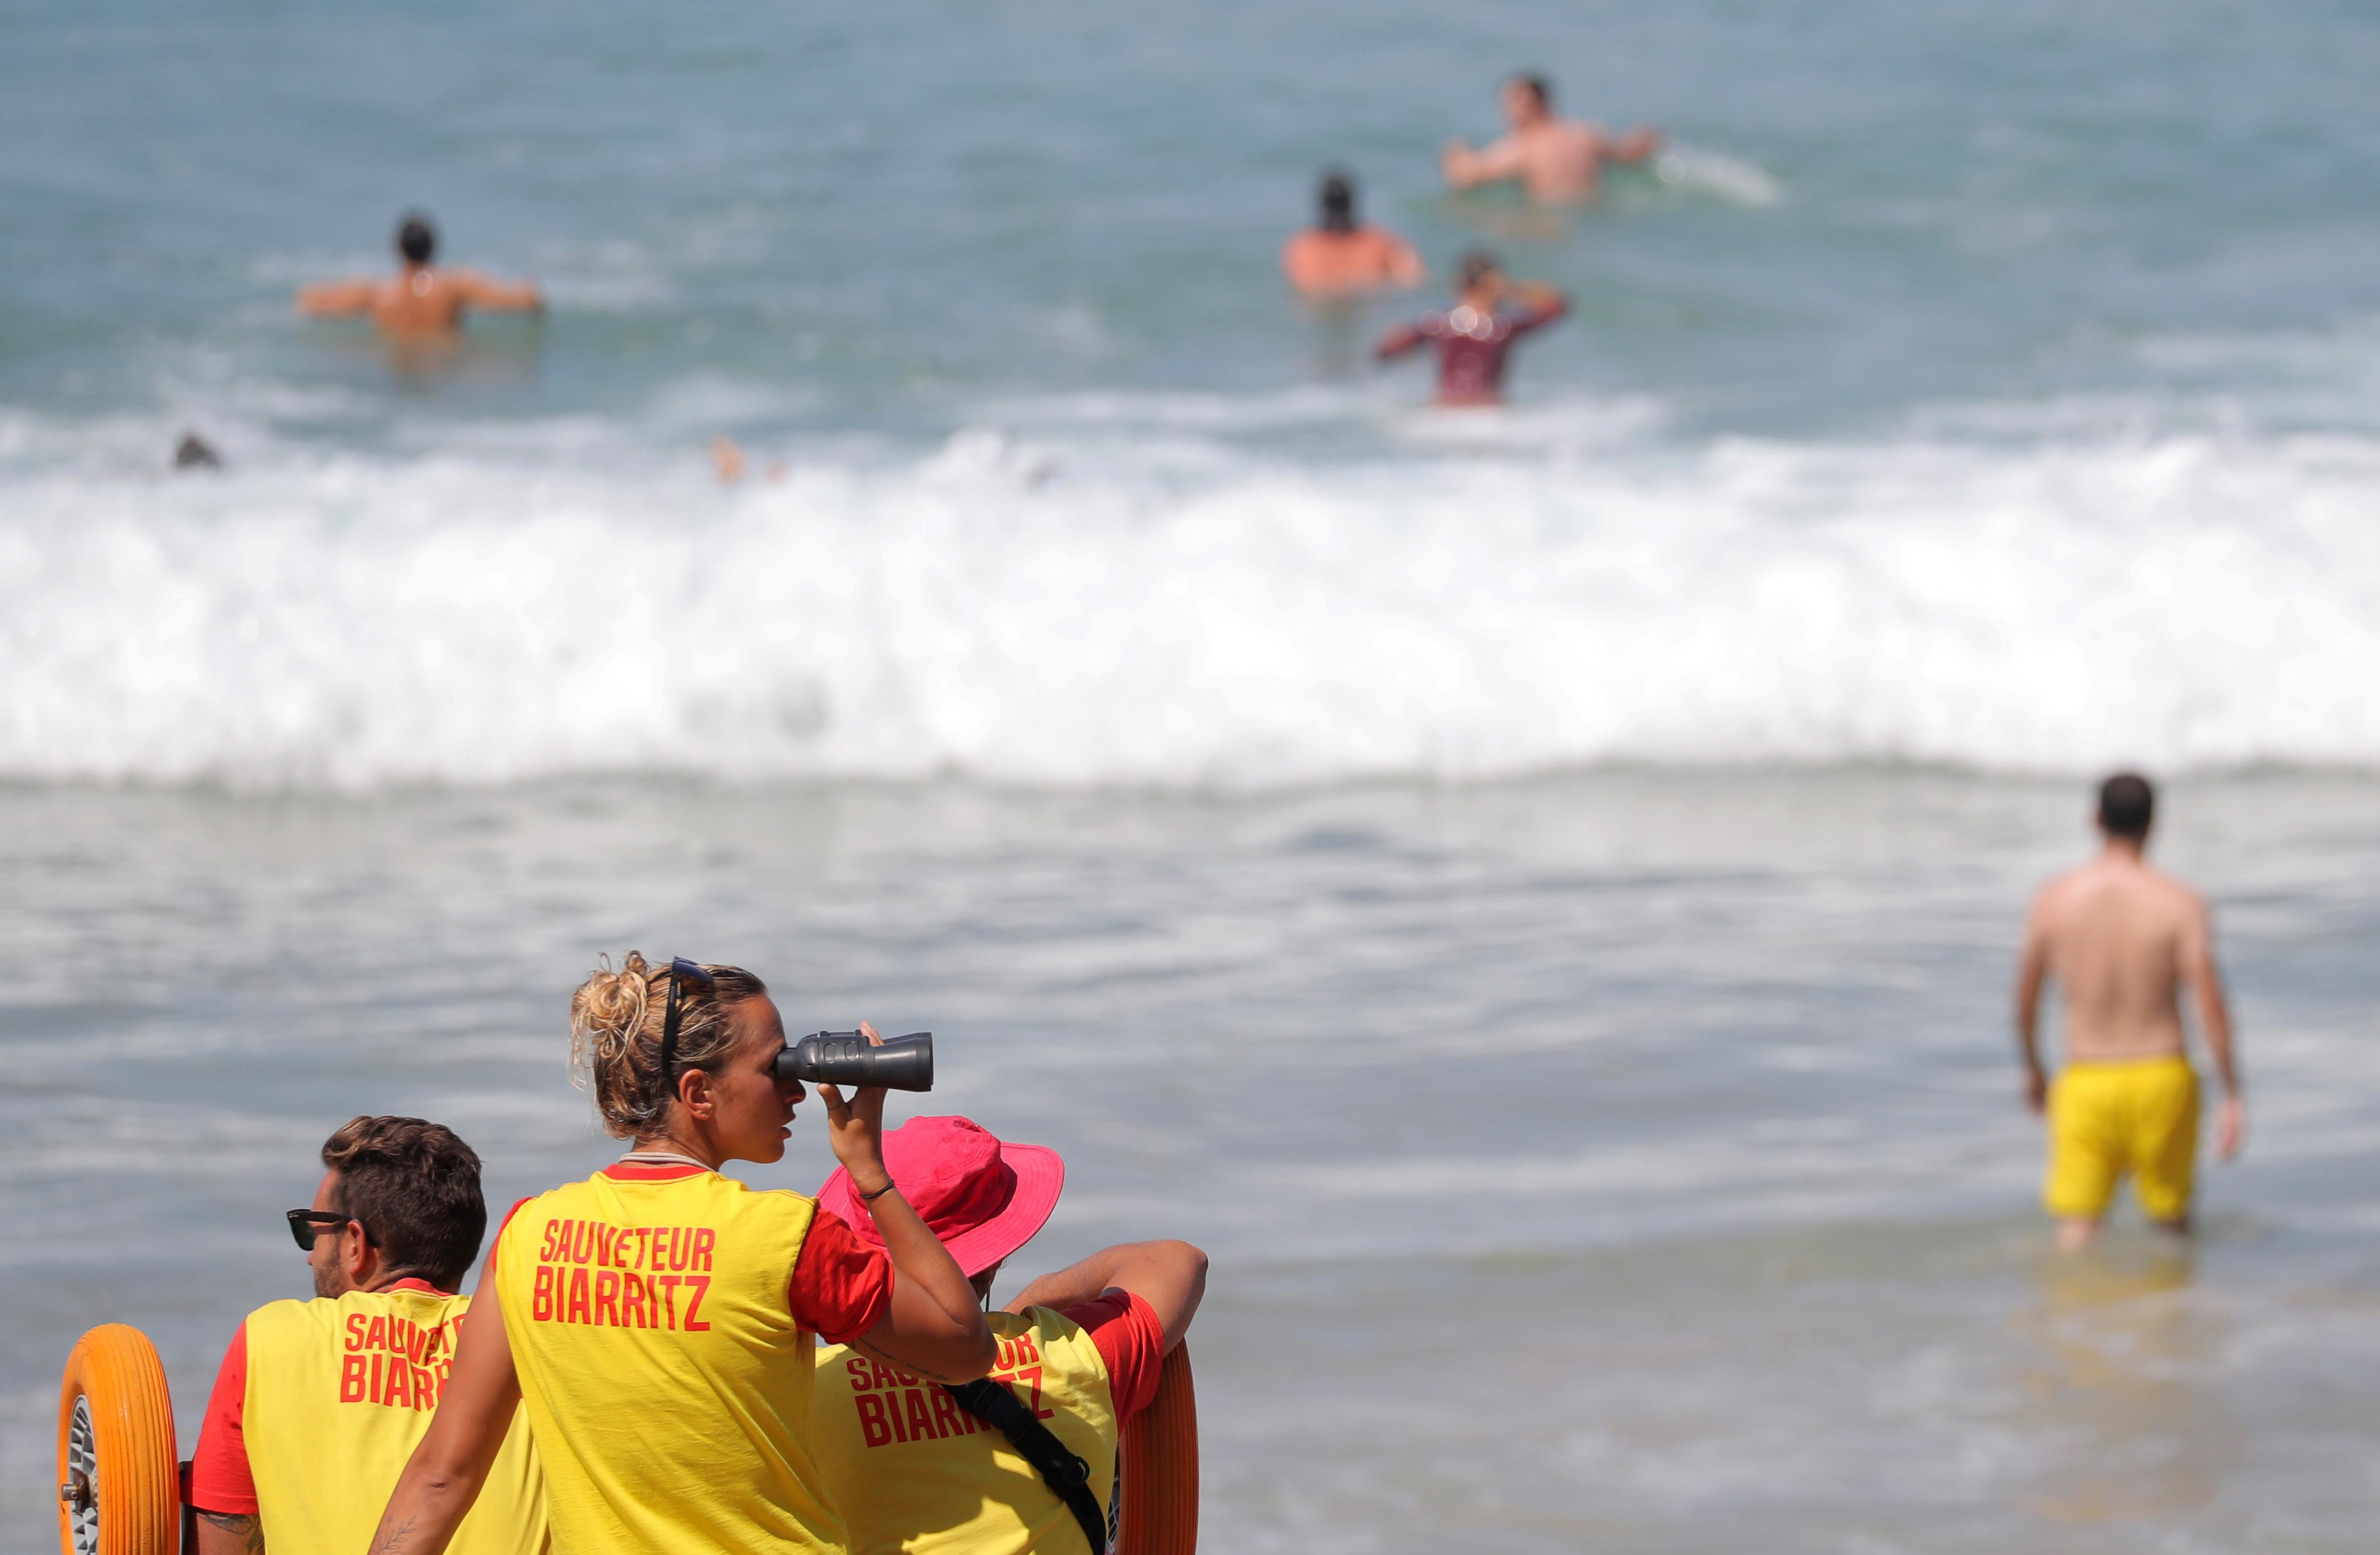 As G7 leaders arrive, barricaded Biarritz leaves swimmers out in the cold